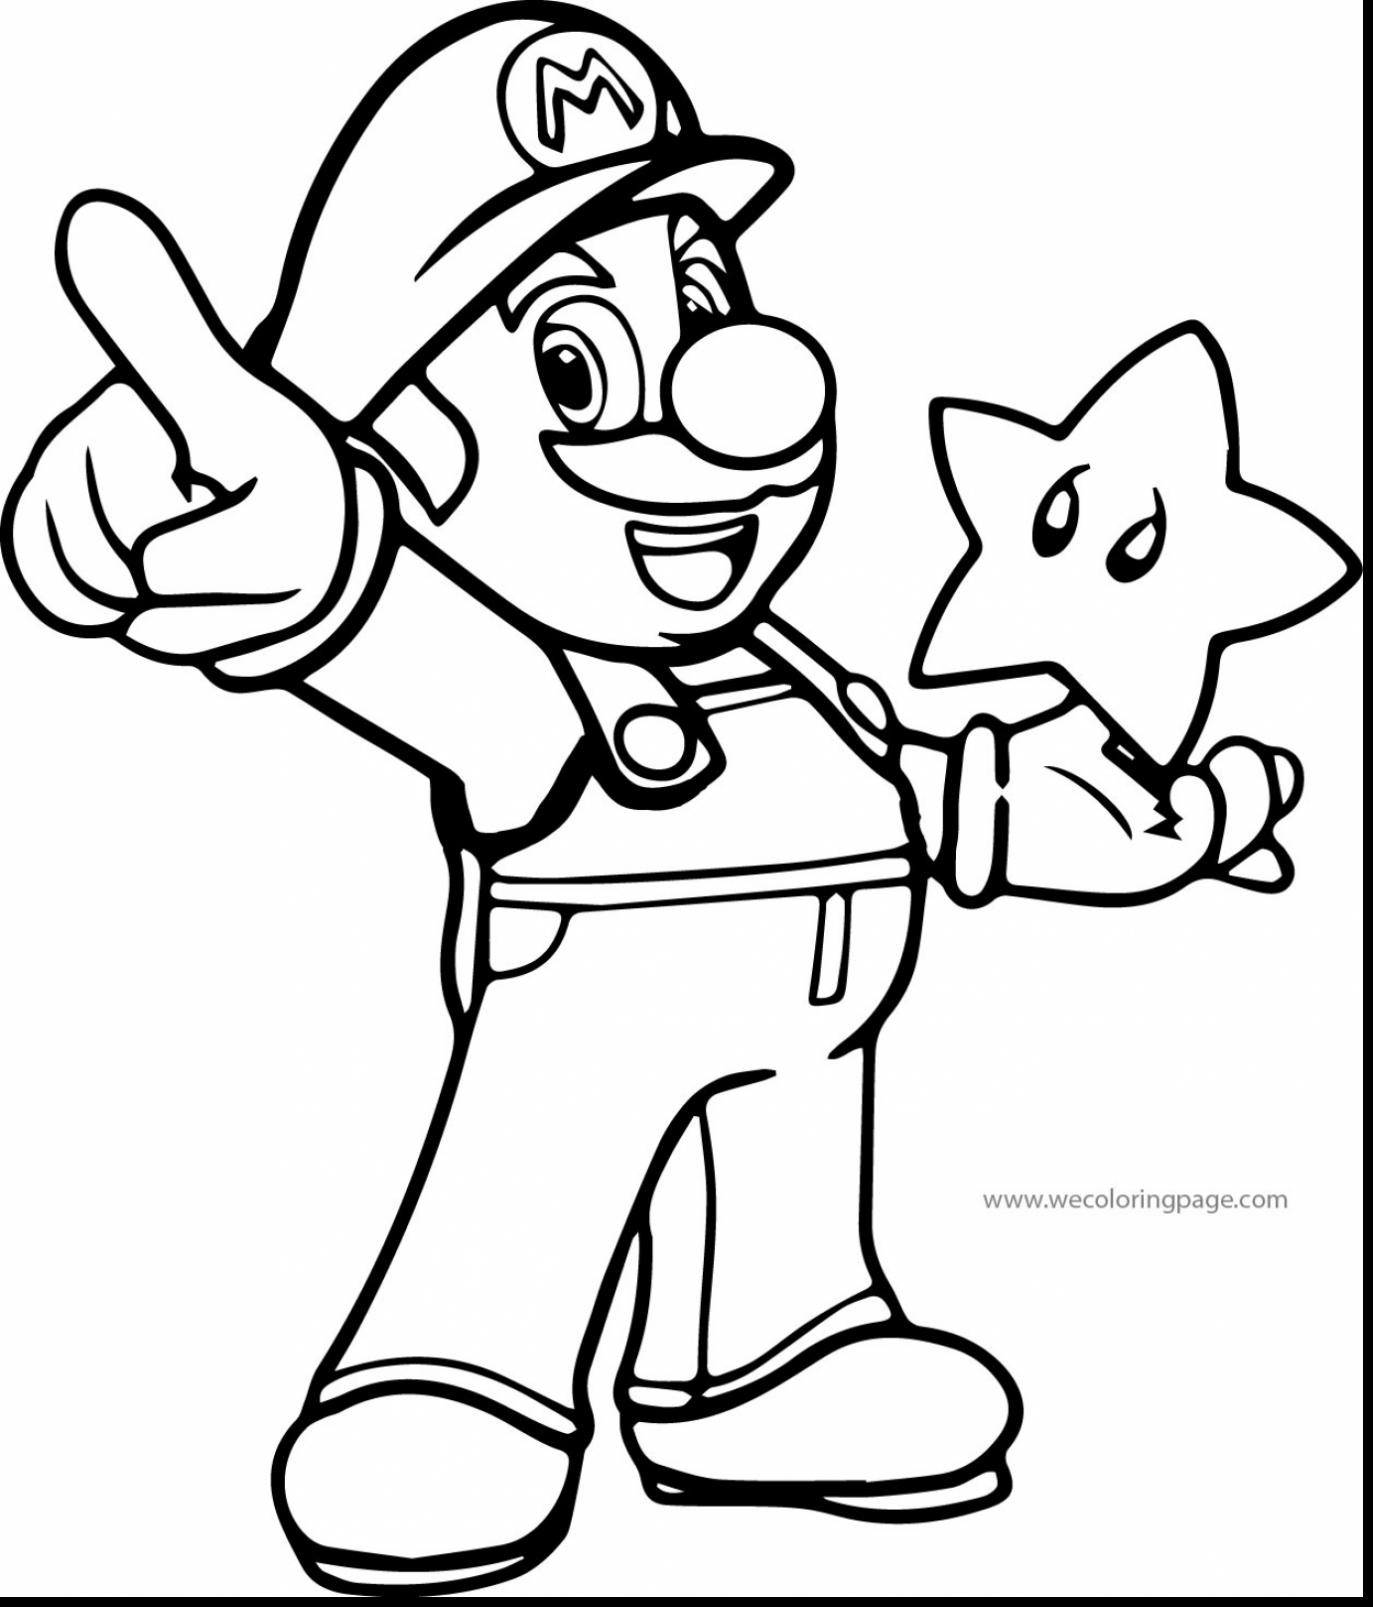 1373x1607 Best Of Remarkable Super Mario Coloring Pages With Mario Brothers